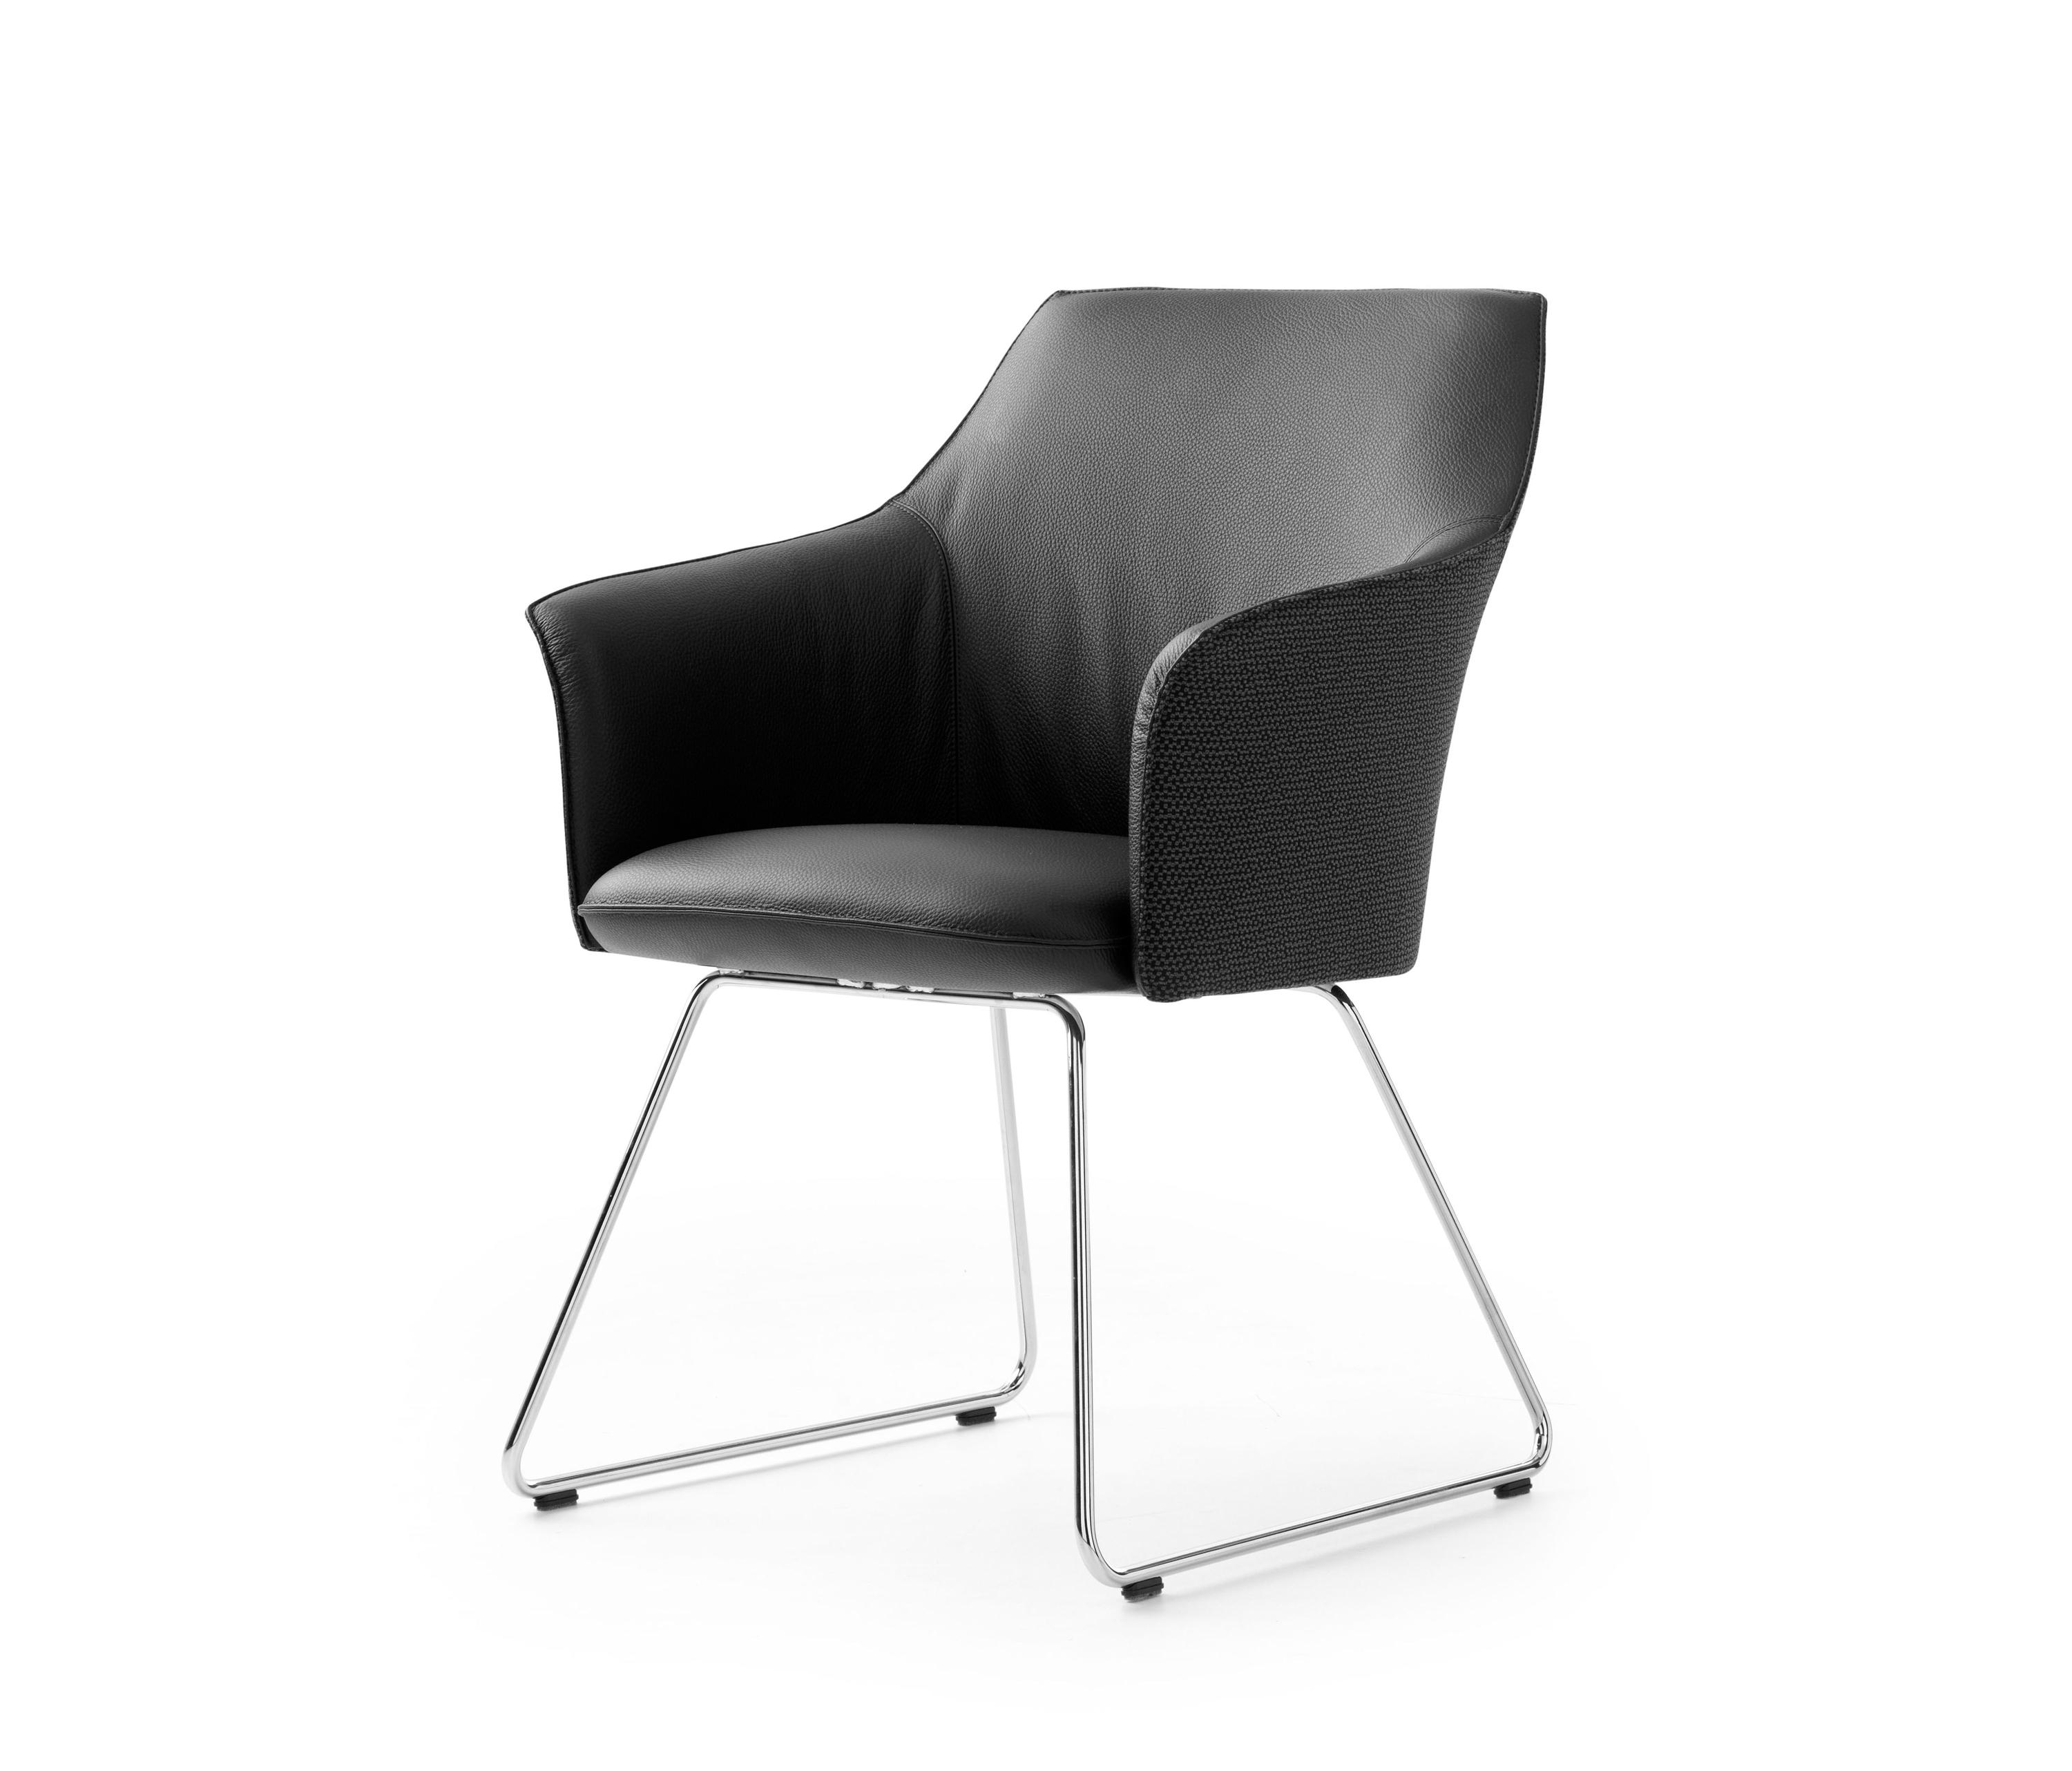 Ideal CHAIRS WITH SLED BASE - High quality designer CHAIRS | Architonic XZ09